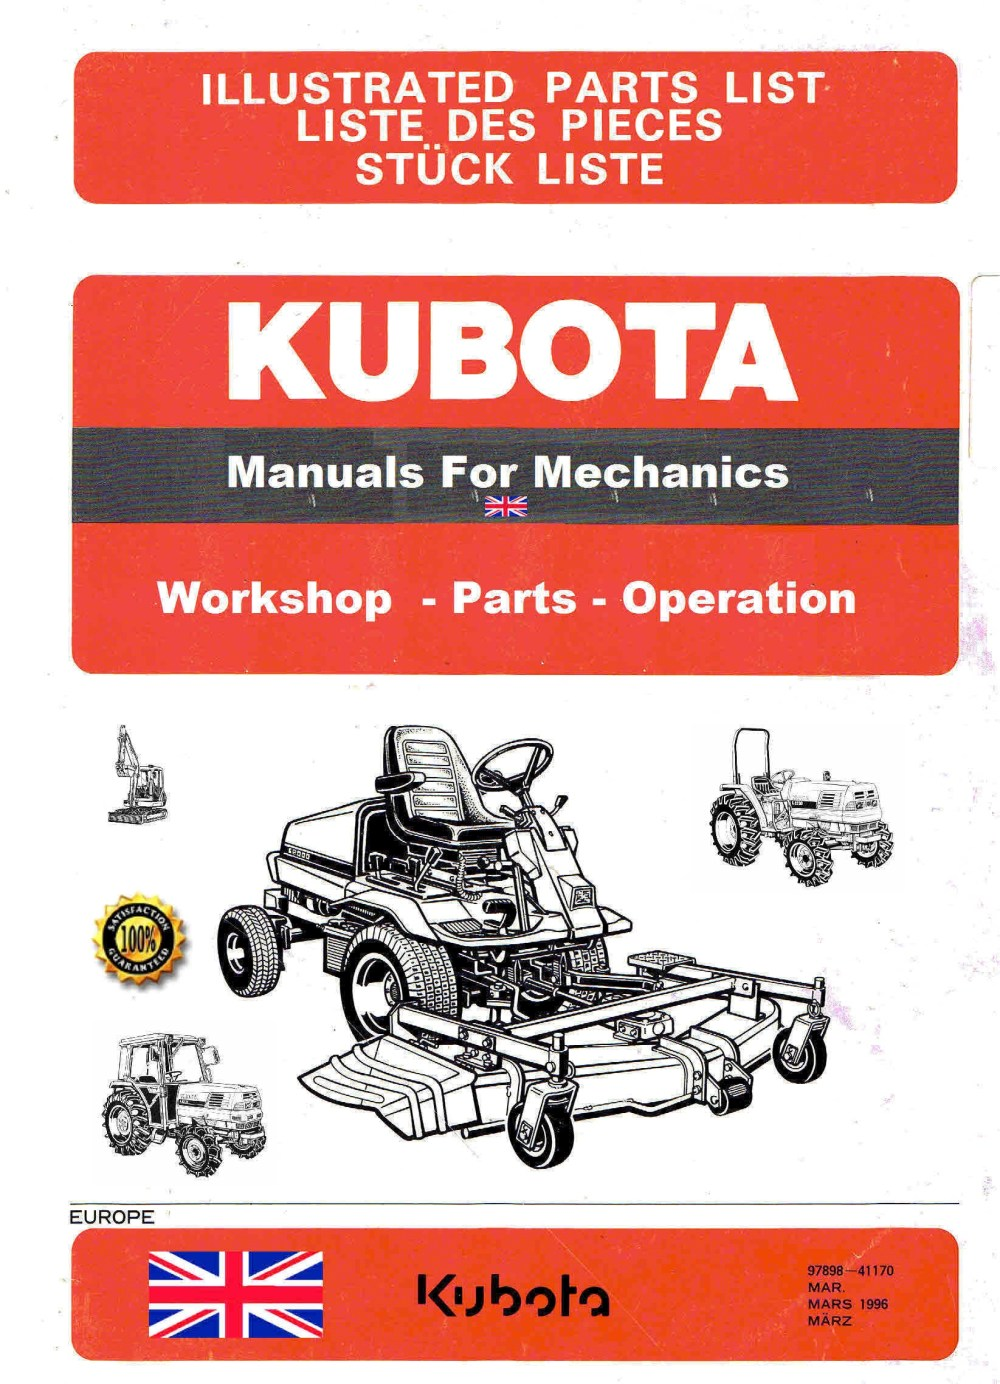 medium resolution of kubota manuals for mechanics the largest plant mechanics kubota manuals archive dvd there is 4 gig of service manuals illustrated part manuals with